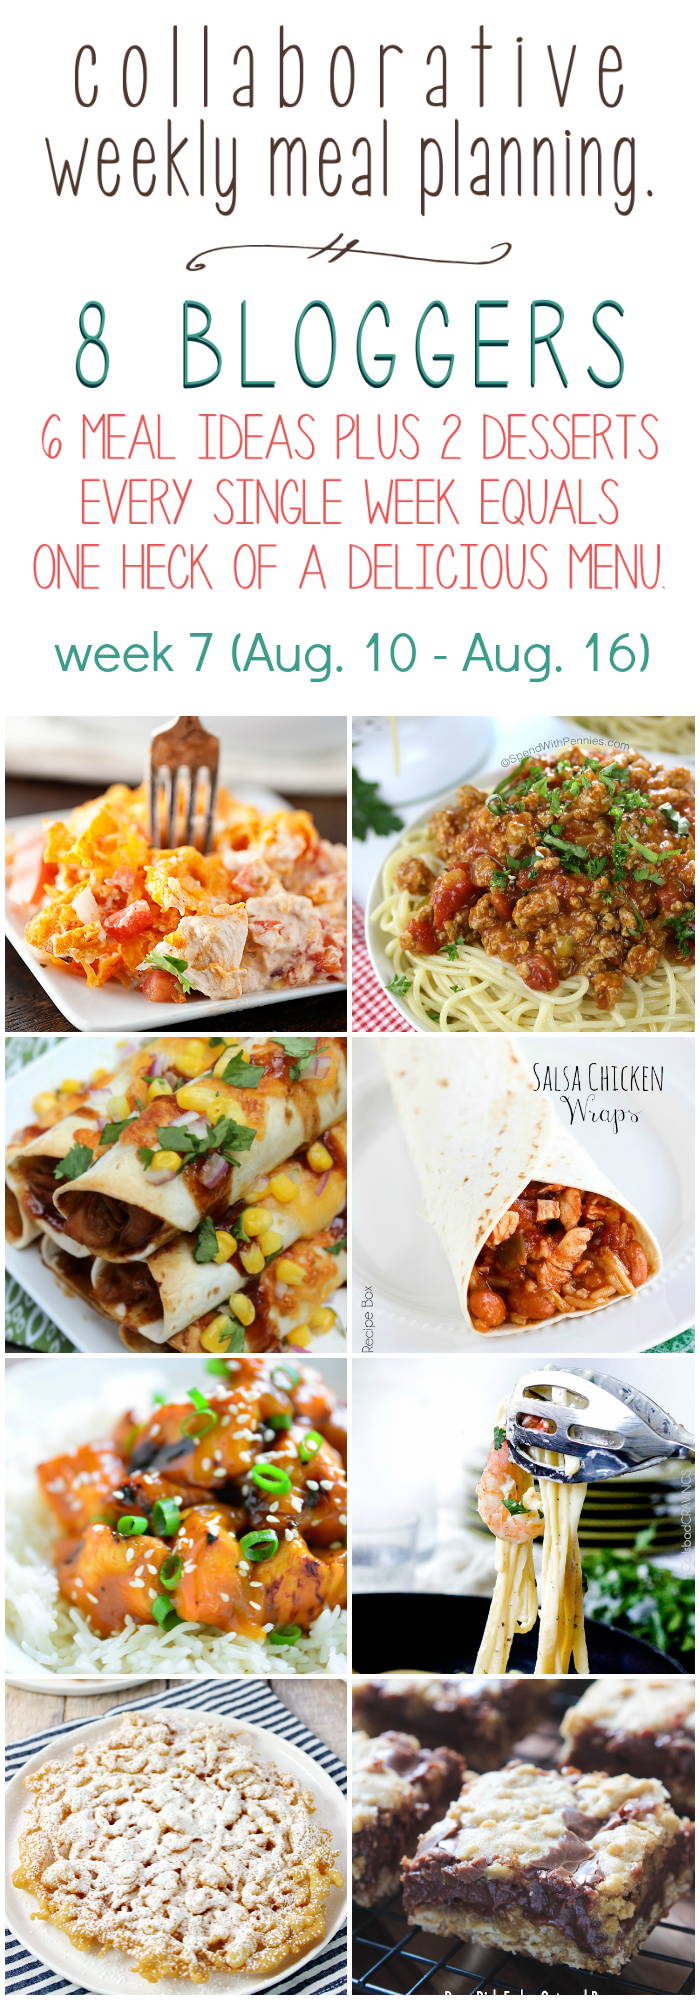 Collaborative weekly meal planning. 8 bloggers. 6 meal ideas plus 2 desserts every single week equals one heck of a delicious menu - week 7.